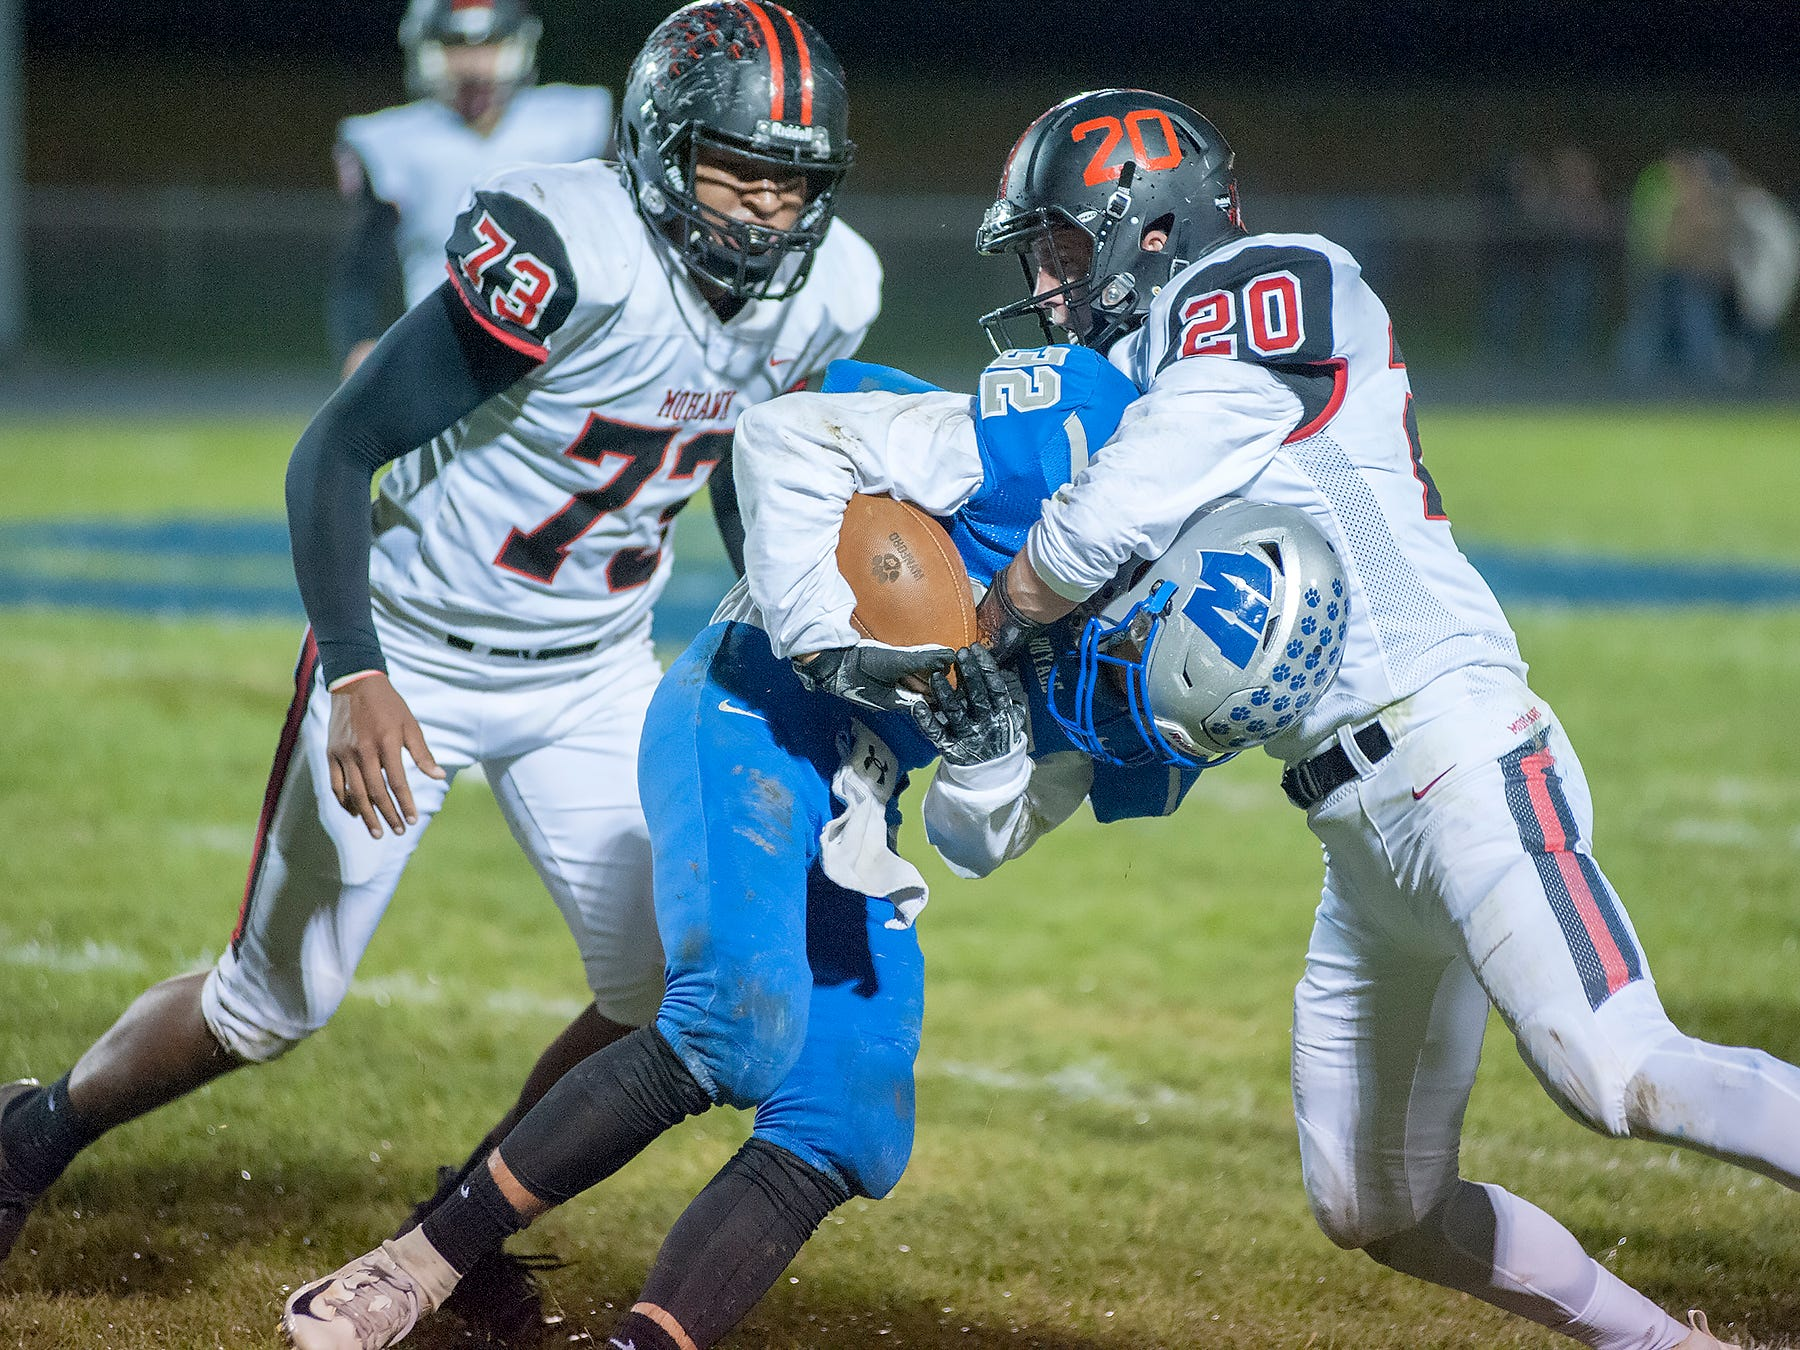 Wynford's Seth Benedict is tackled by Mohawk's Zach Hayman.